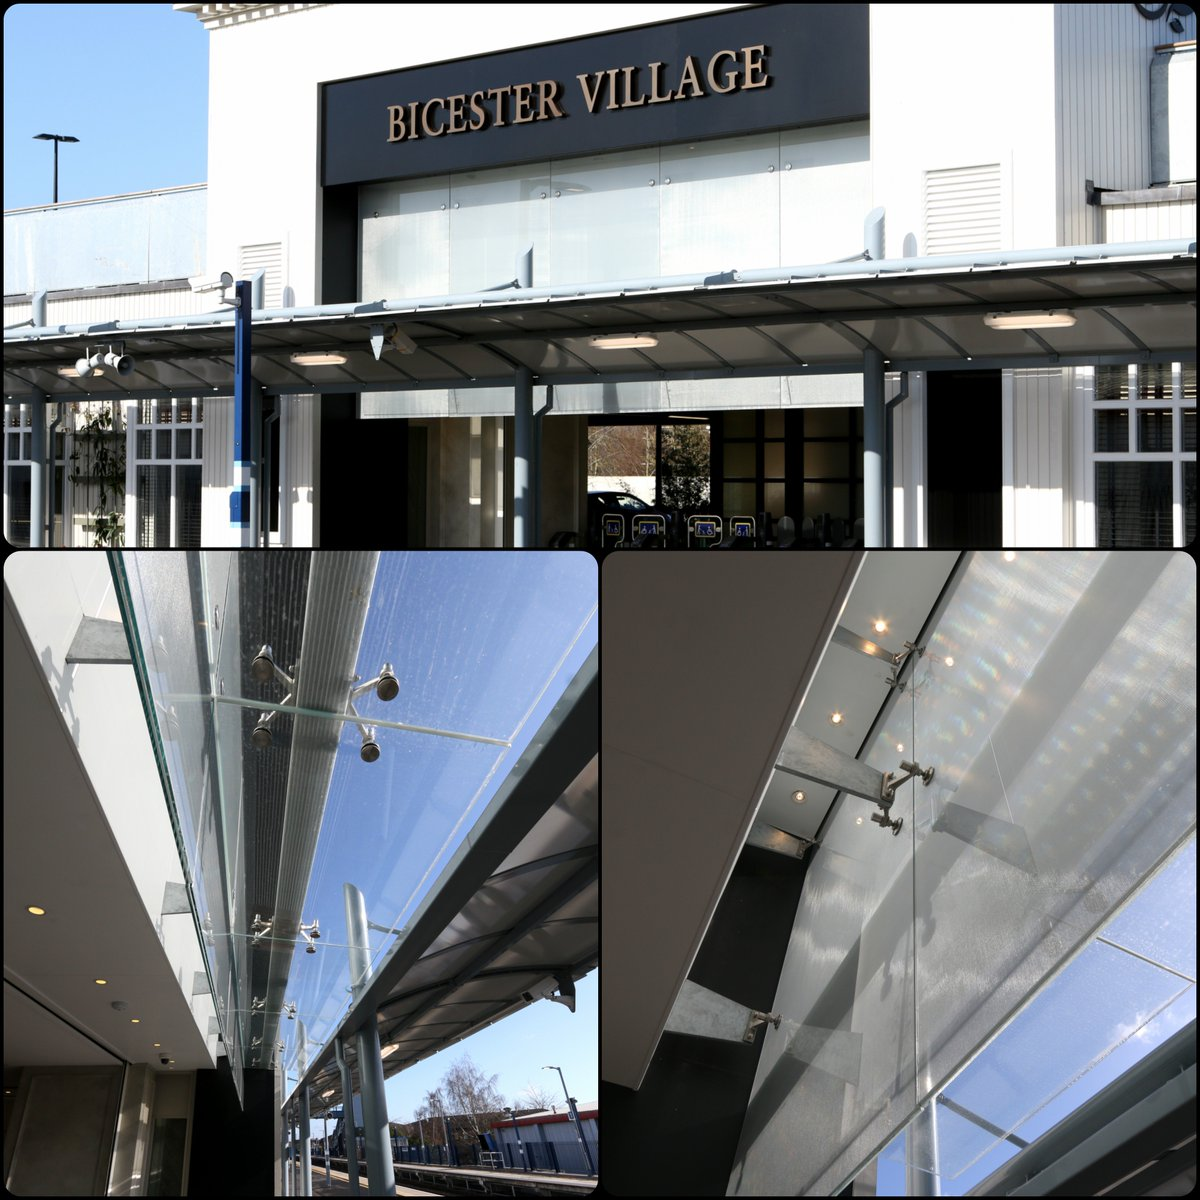 Bicester Village Train Station in Oxfordshire Frameless spider glazing incorporating a feature mesh inter-layer. https://t.co/1hqTTVJ1AS